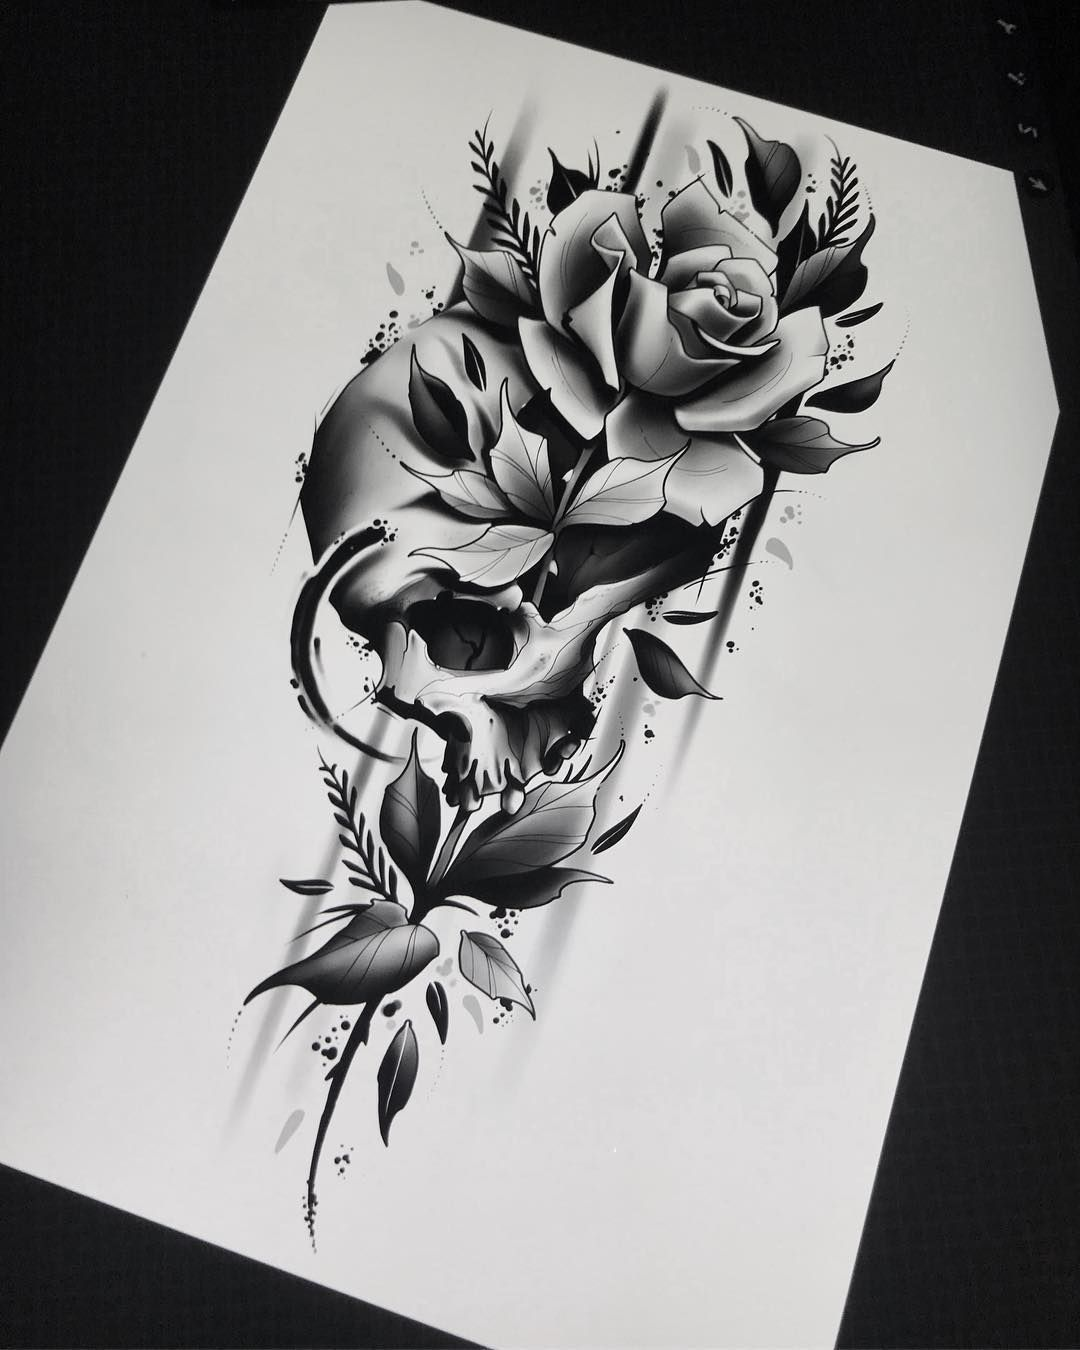 Got This Design Up For Grabs. Would Love To Do It On A